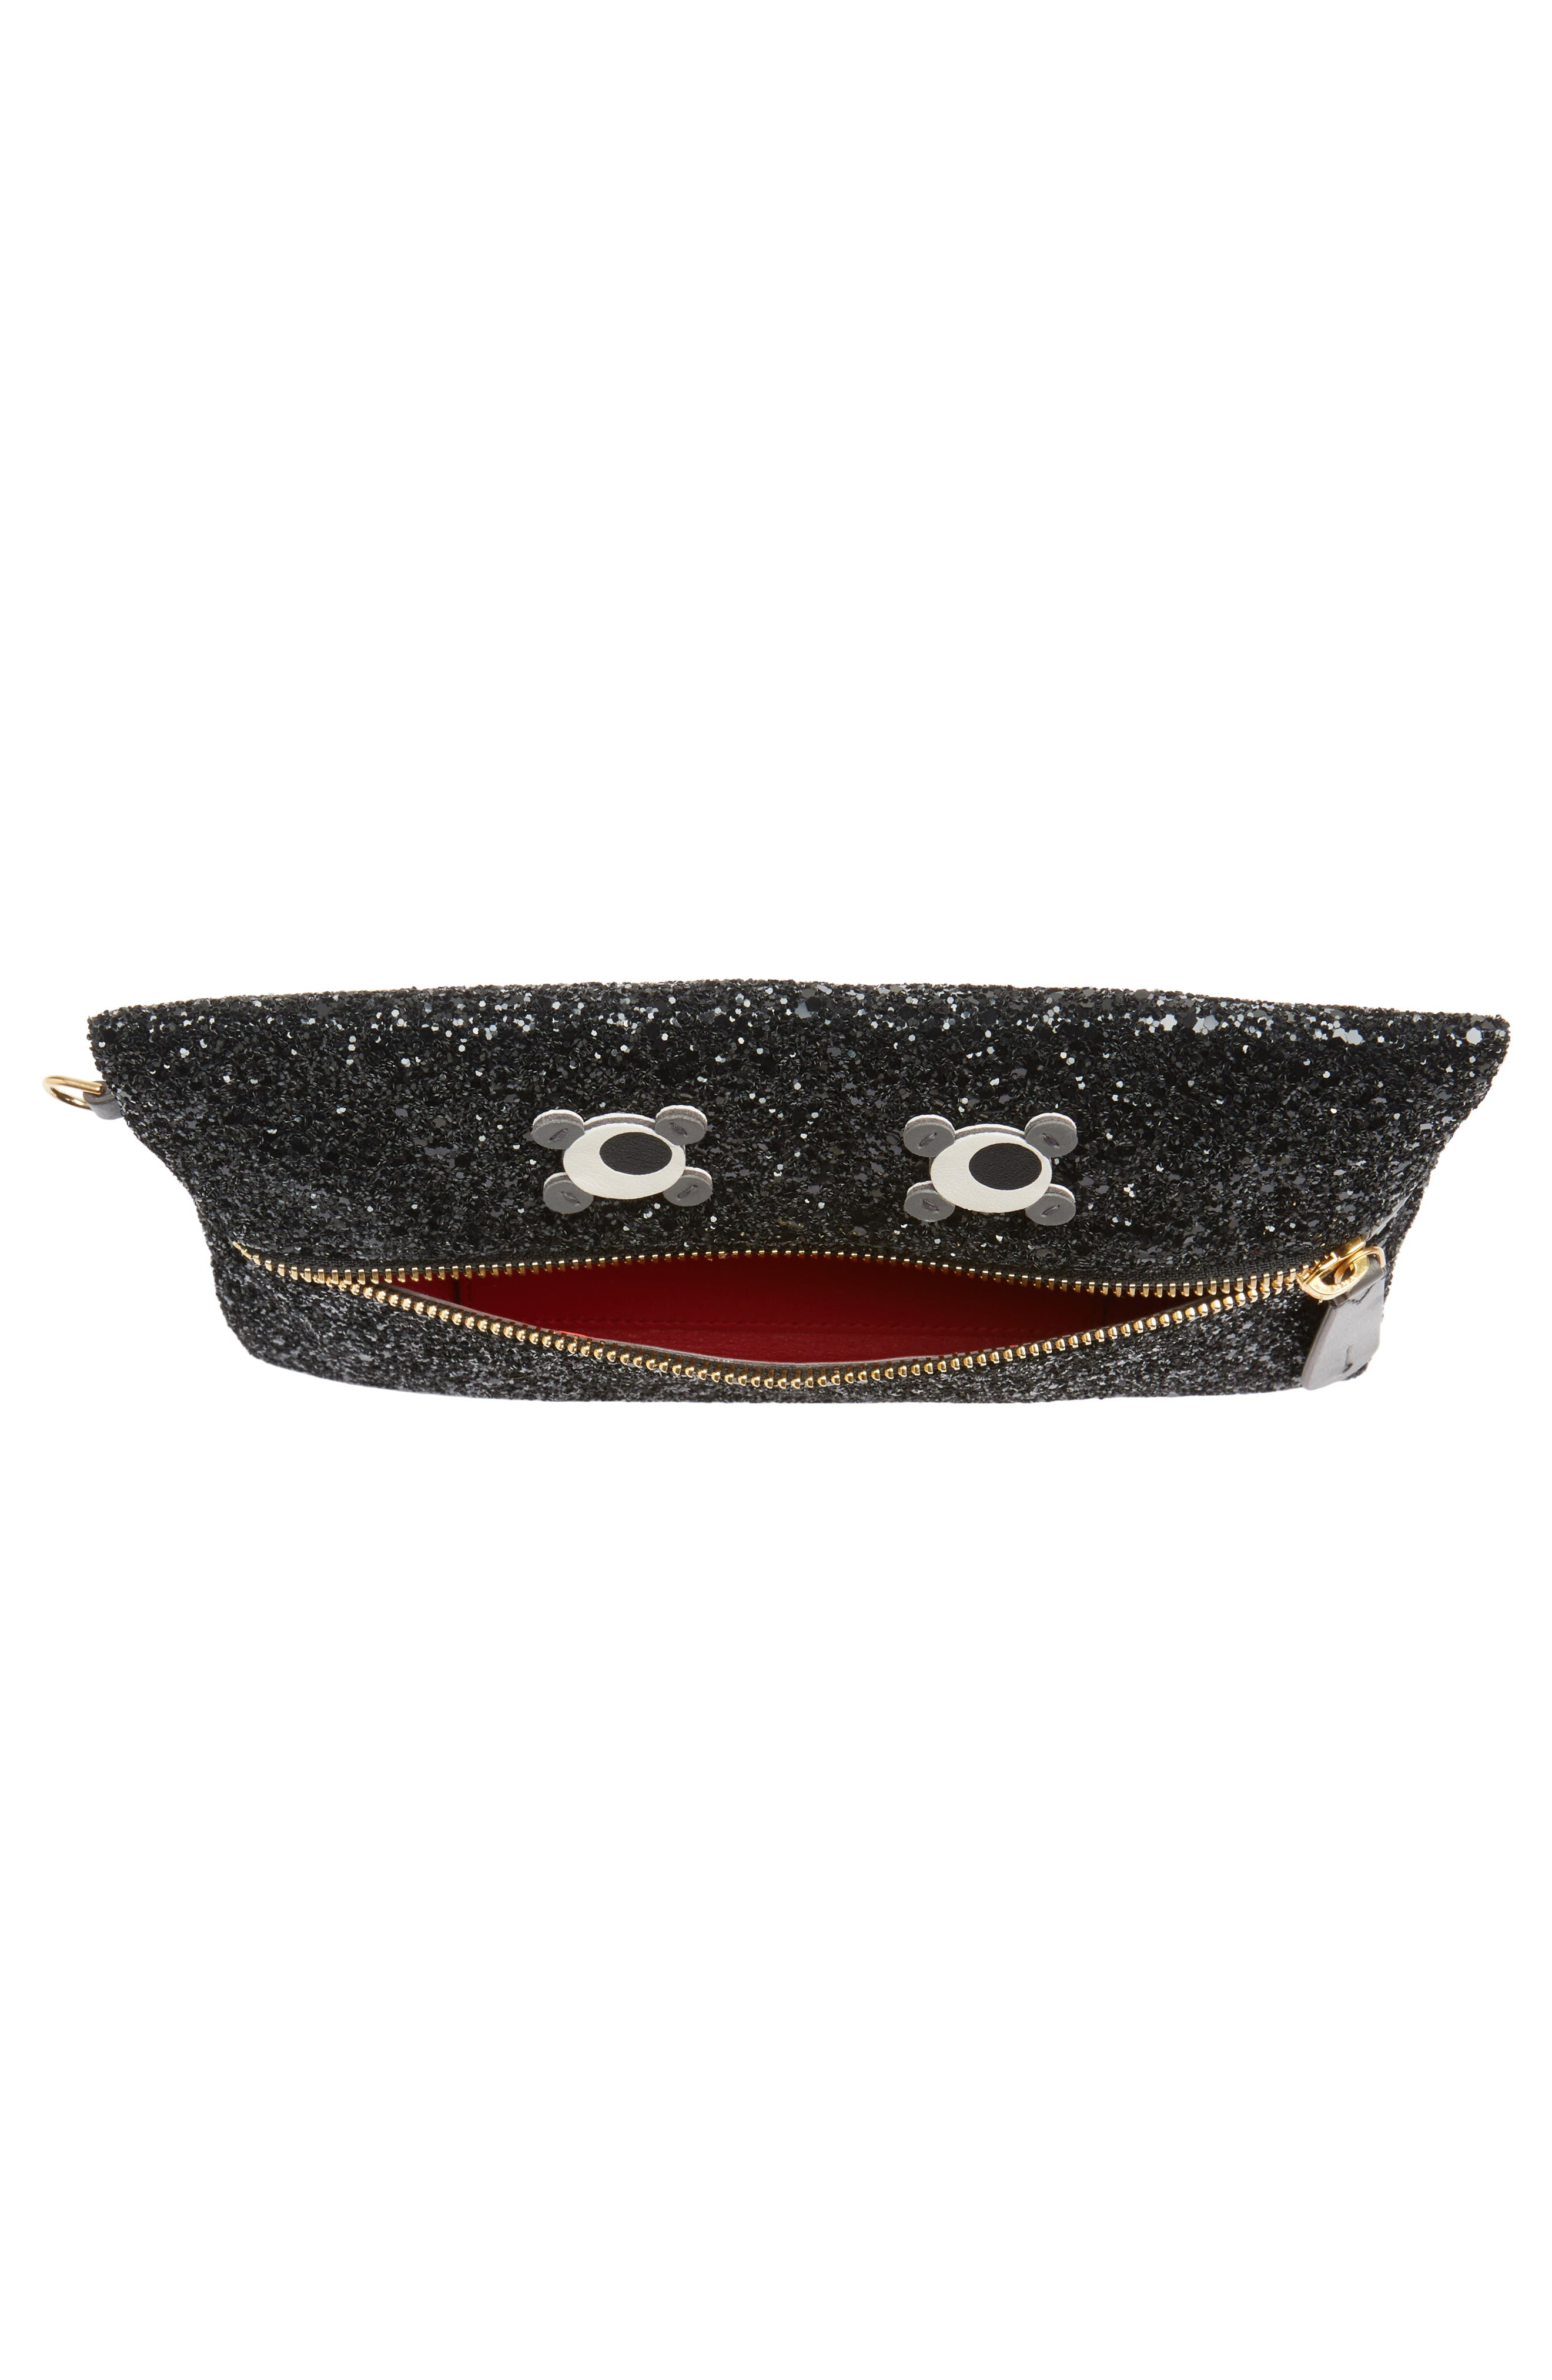 Eyes Circulus Glitter Pouch,                             Alternate thumbnail 4, color,                             001